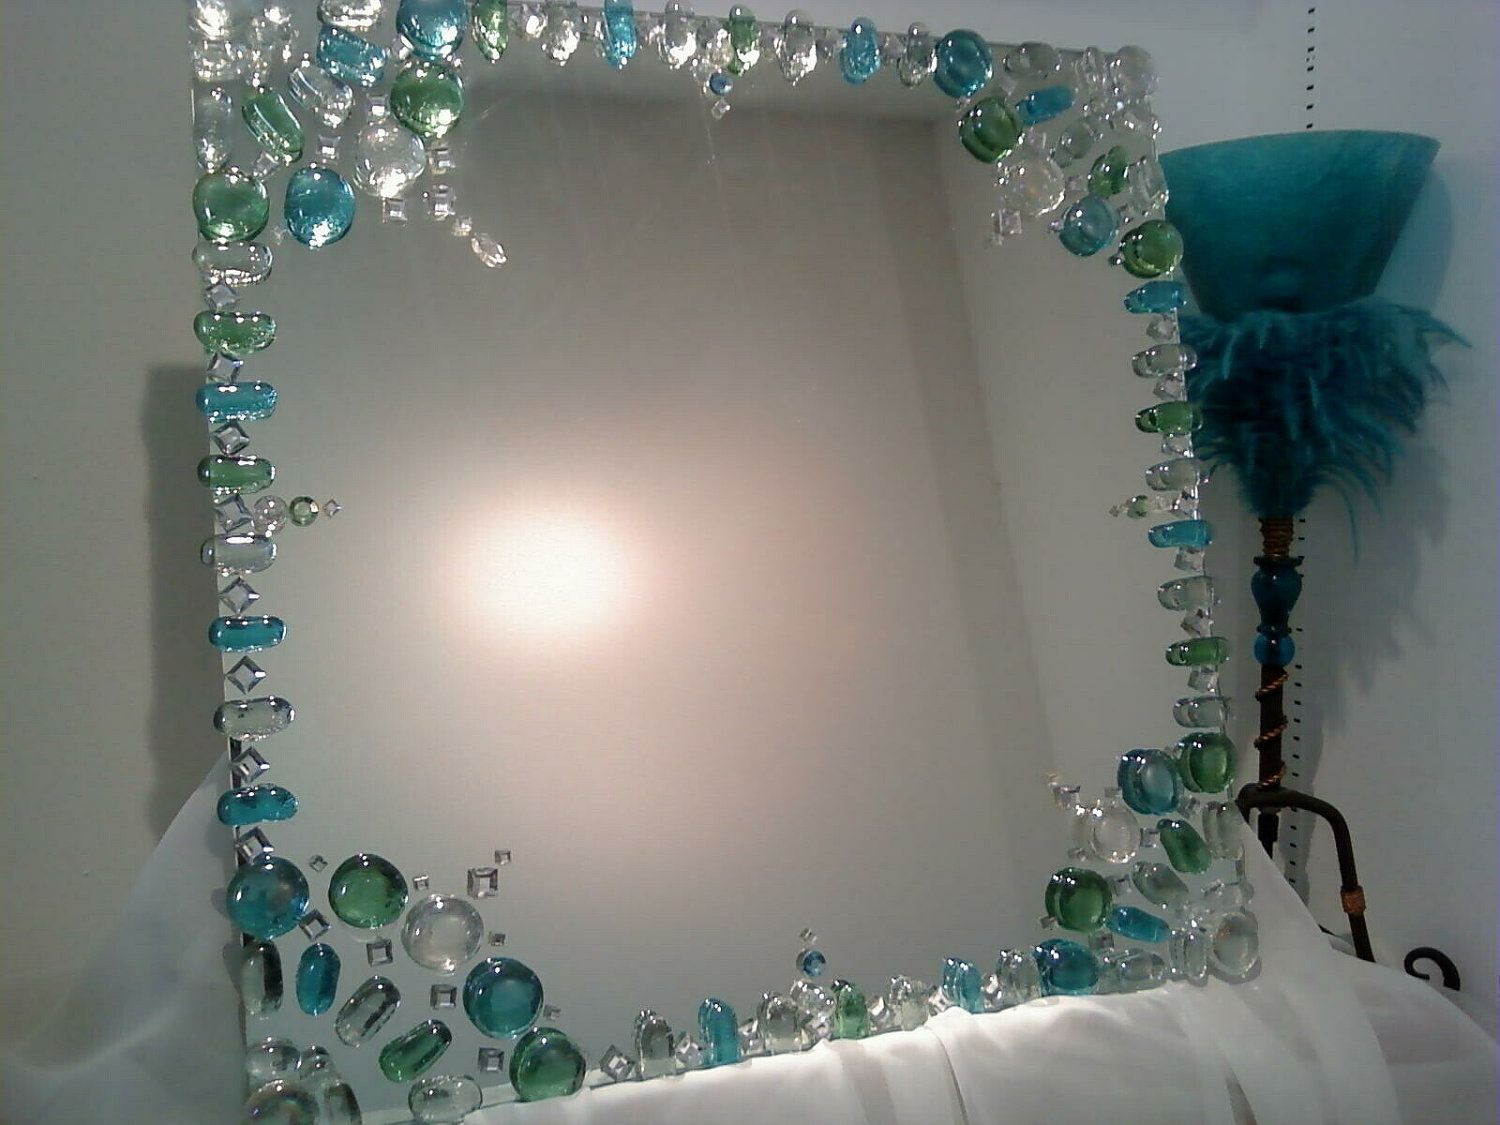 Mirror Decoration Mirror Design Idea Decorating The Edge With Gems Instead